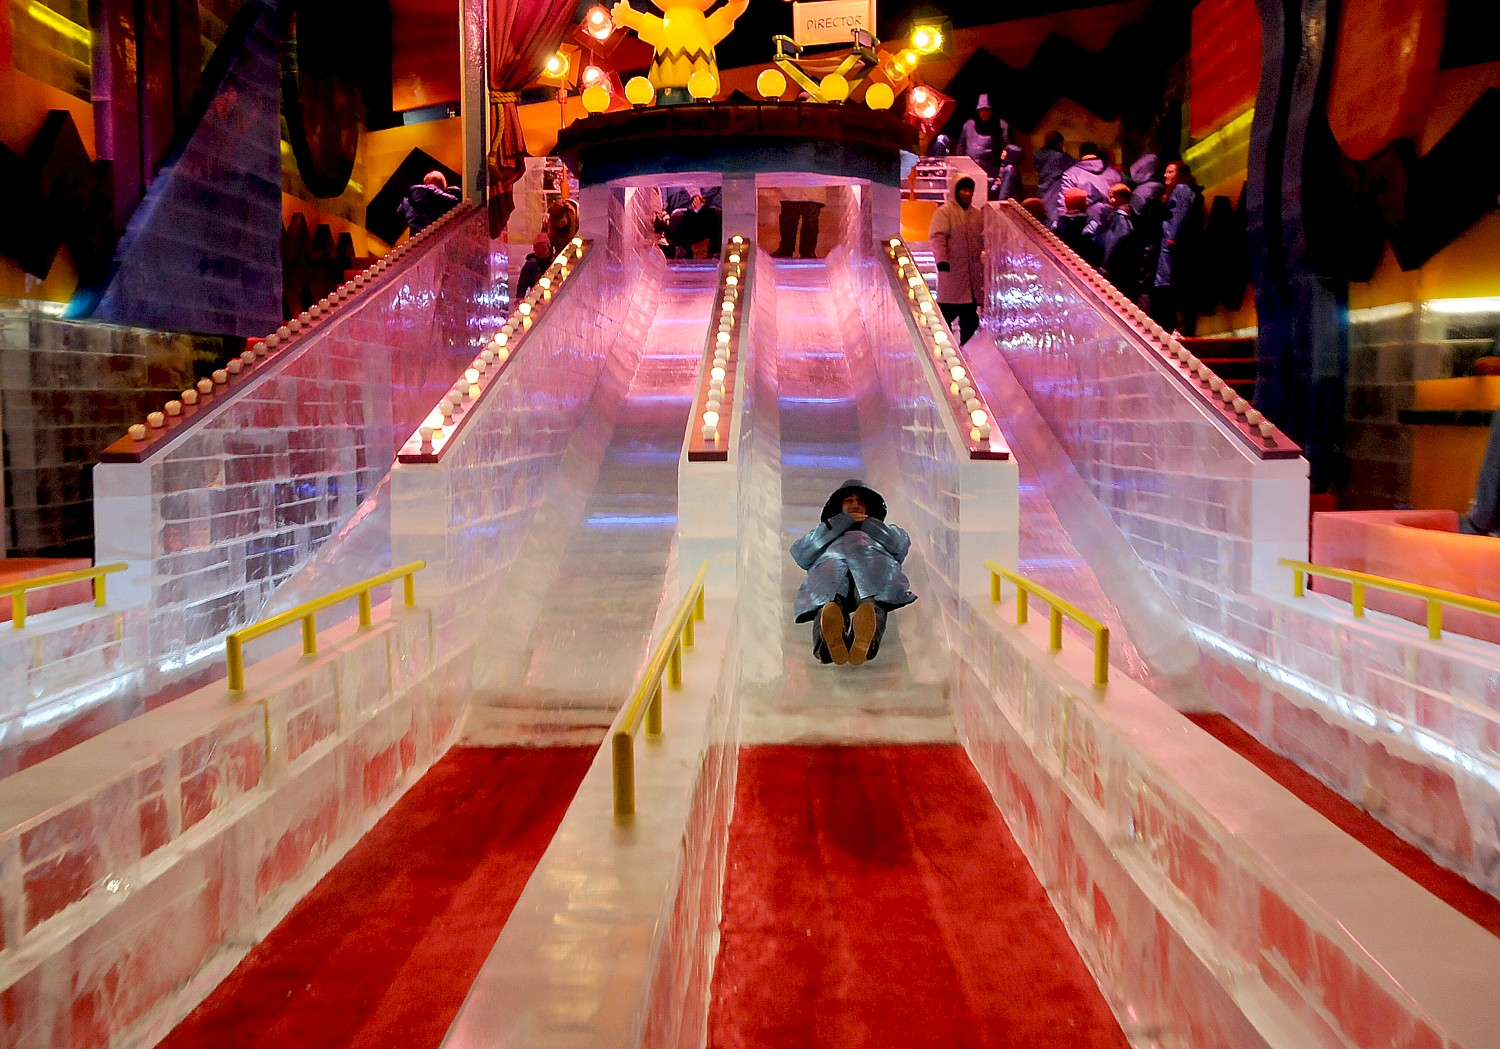 A resort stay: Gaylord National Resort just outside Washington DC offers a spectacular Christmas on the Potomac festival including ICE! where you get to go down an ice slide © 2016 Karen Rubin/goingplacesfarandnear.com